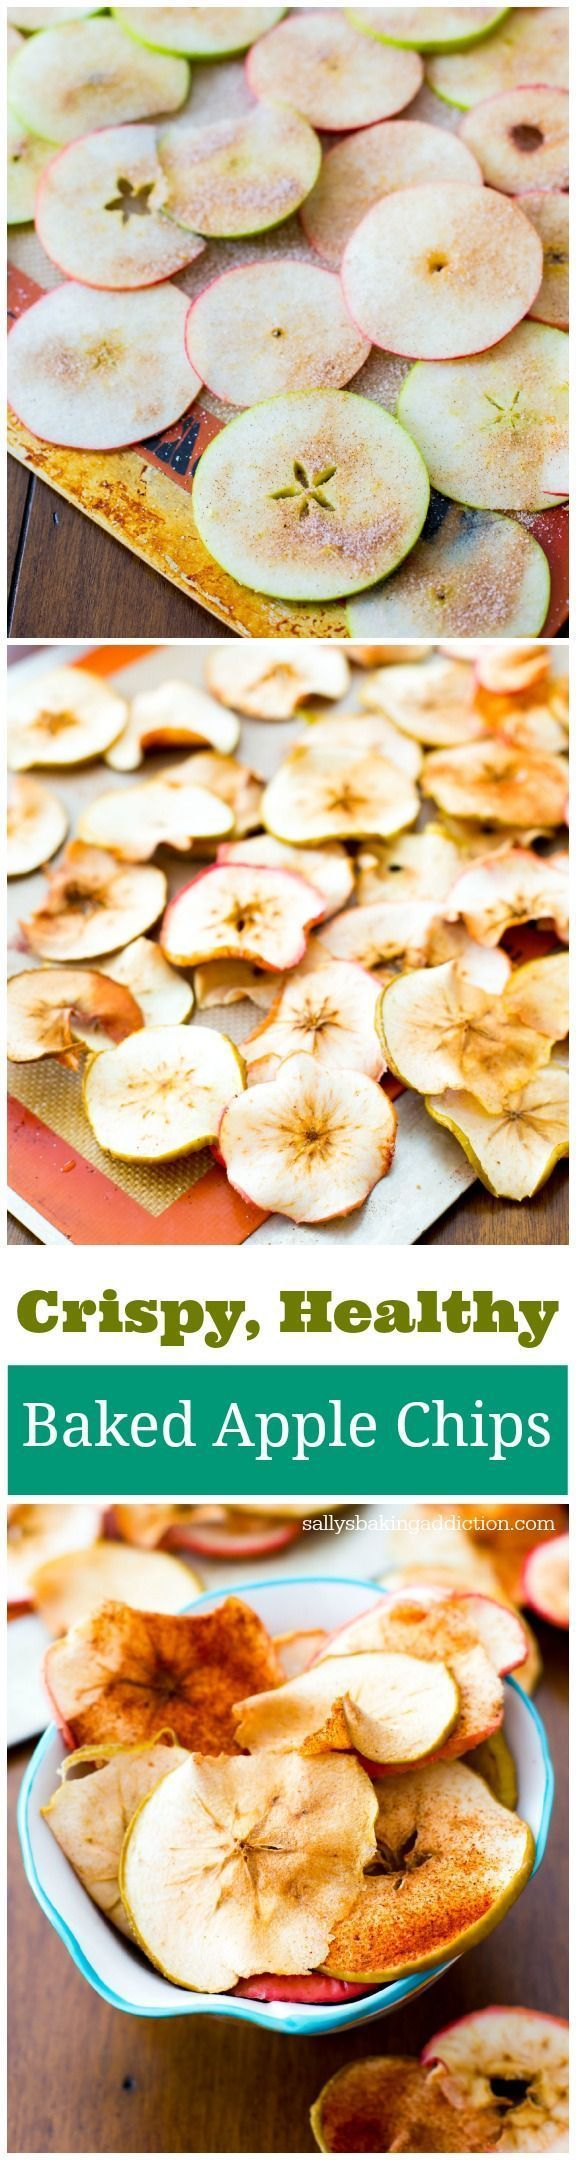 Crunchy, simple, healthy Baked Apple Chips. These are so addicting and all you are eating is apples. /sallybakeblog/